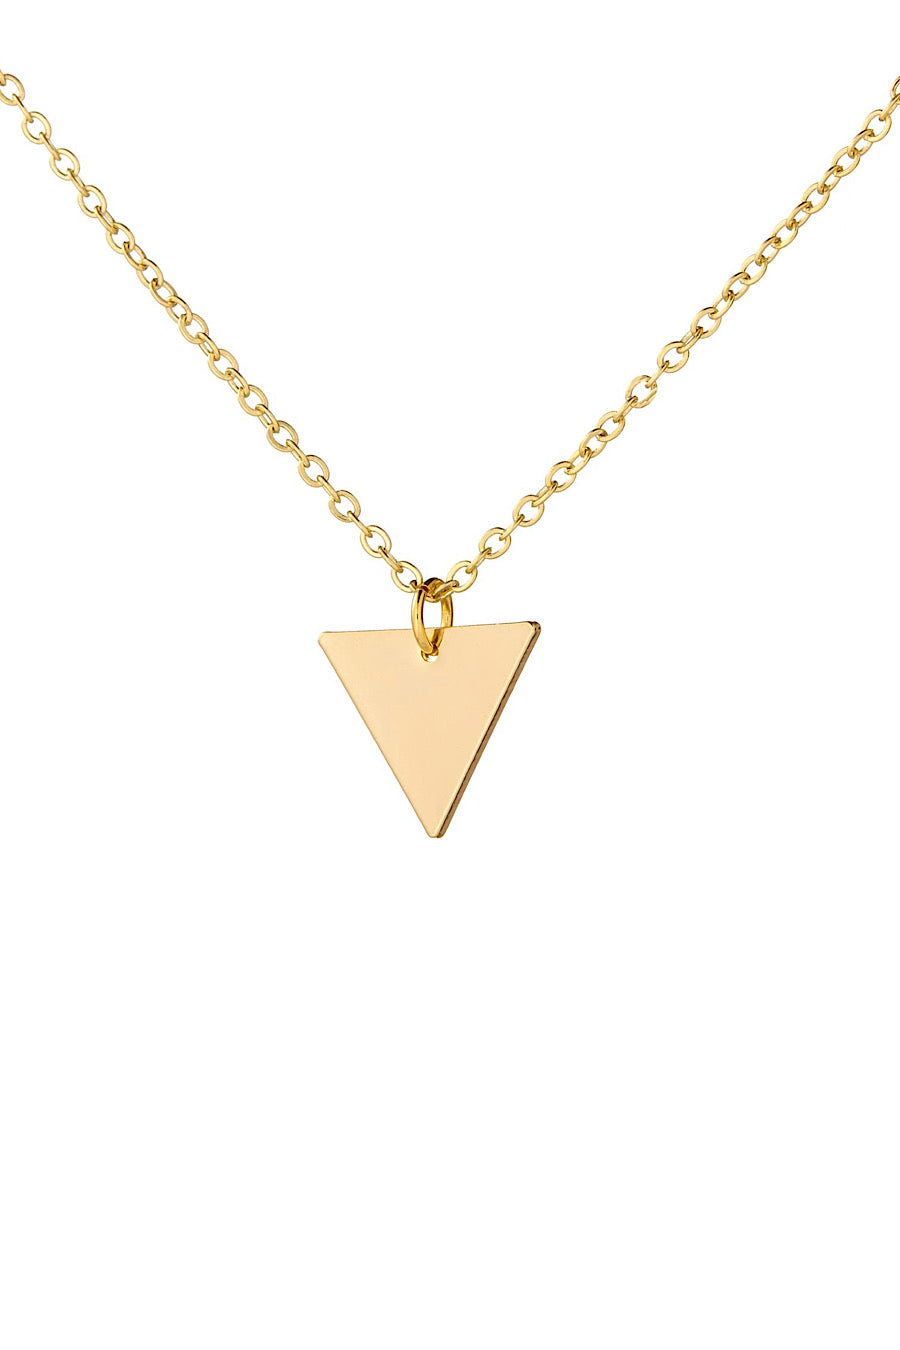 Dainty Triangle Necklace in Gold